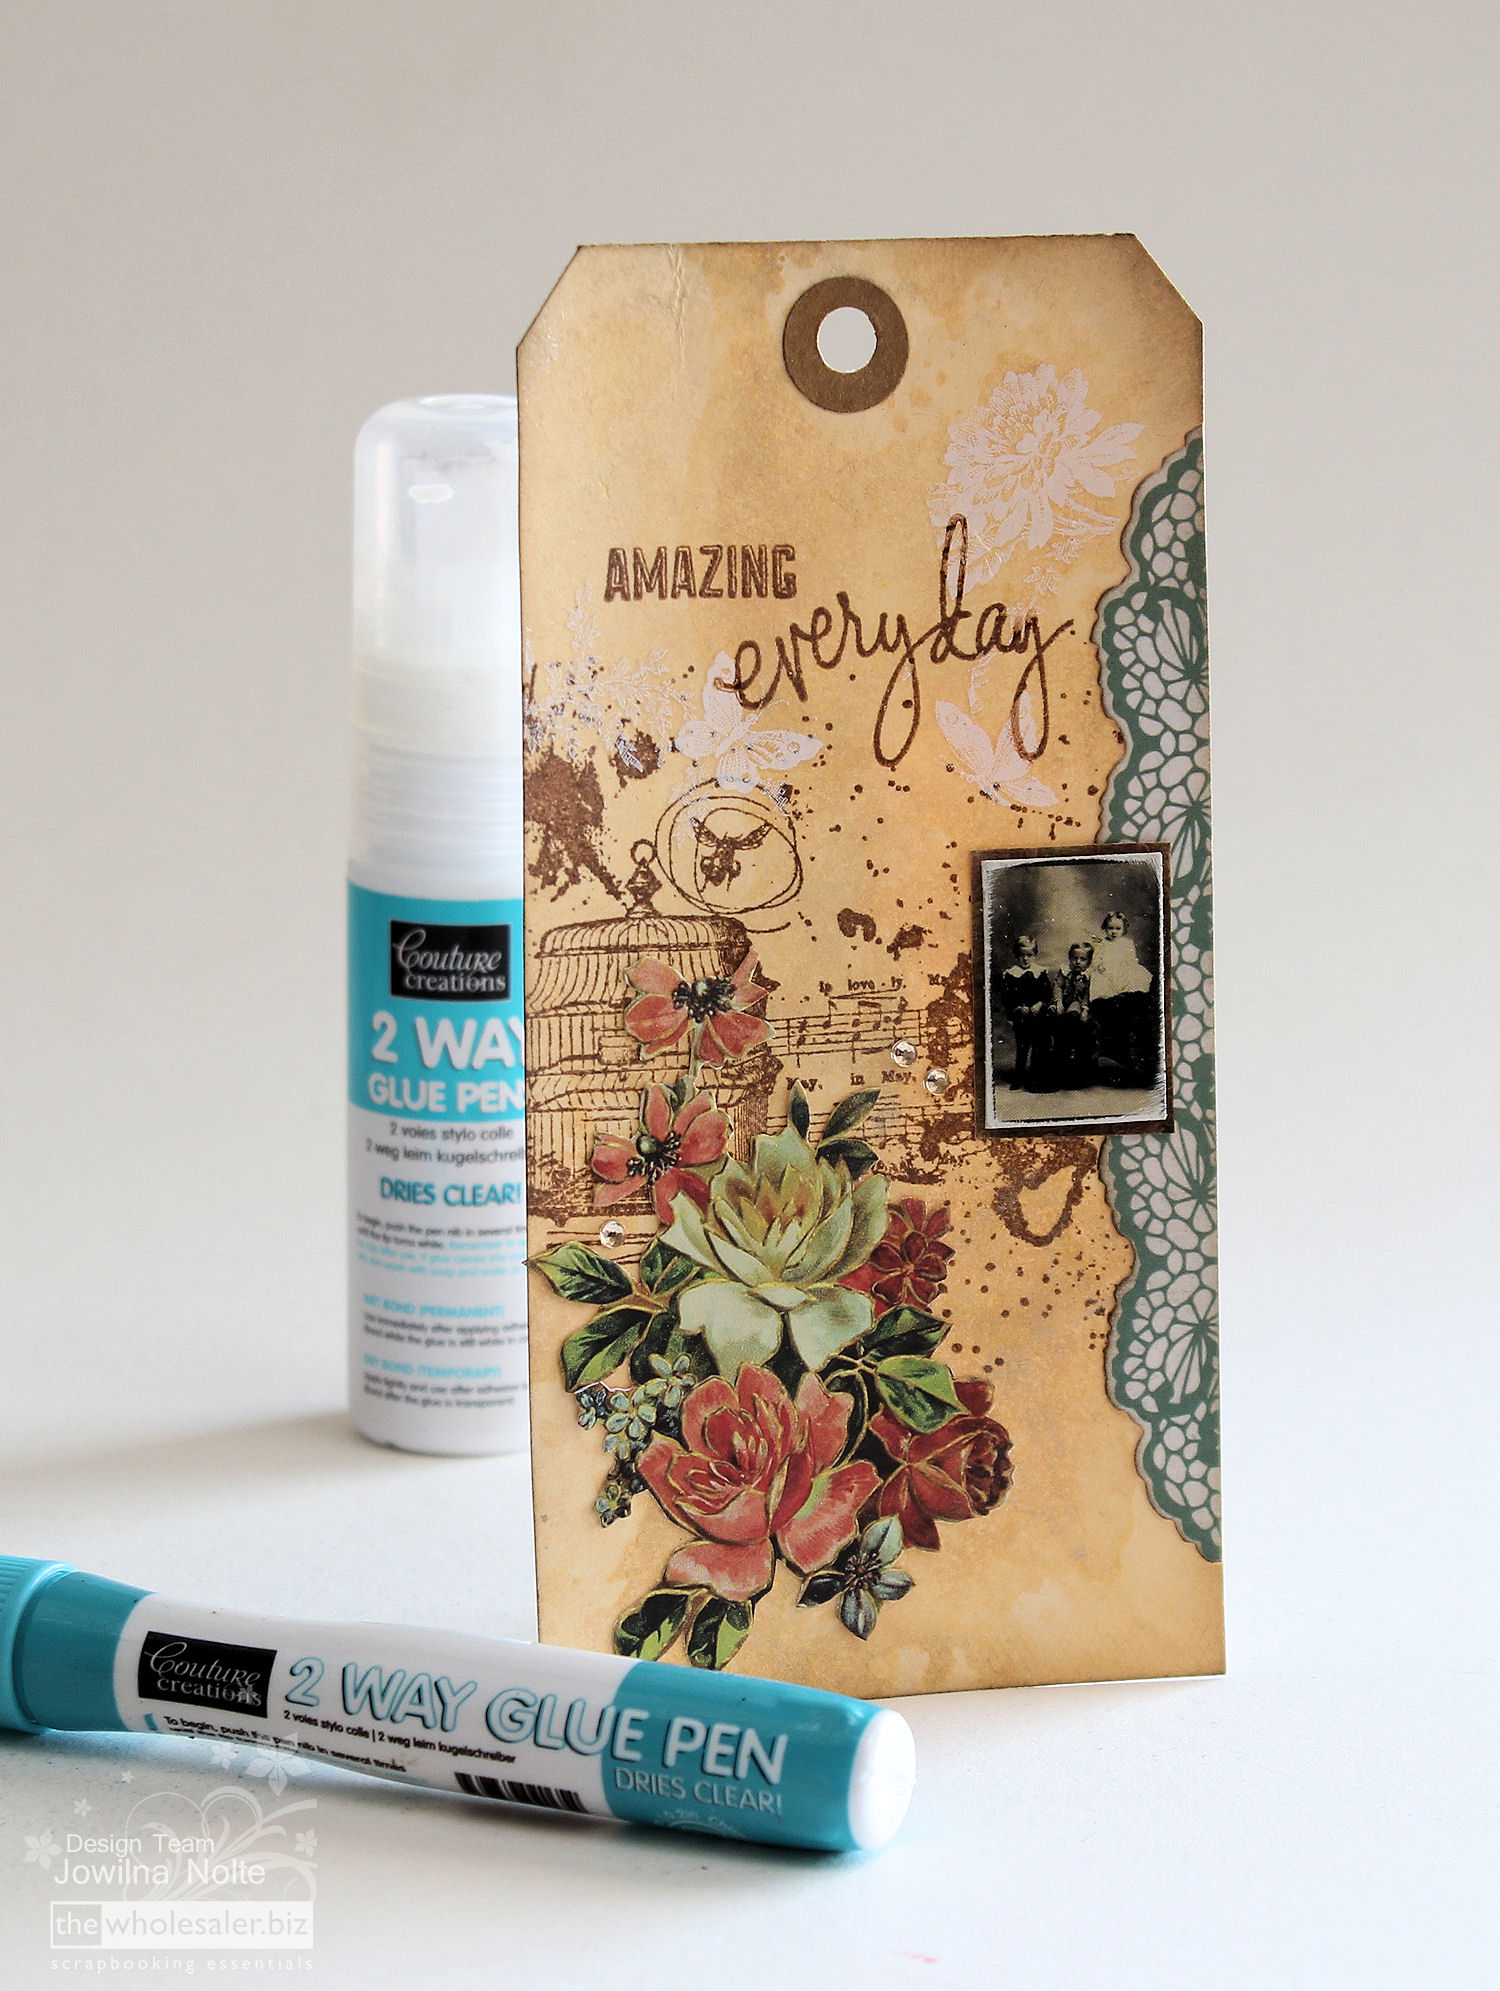 Couture Creations 2 Way Glue - Tutorial